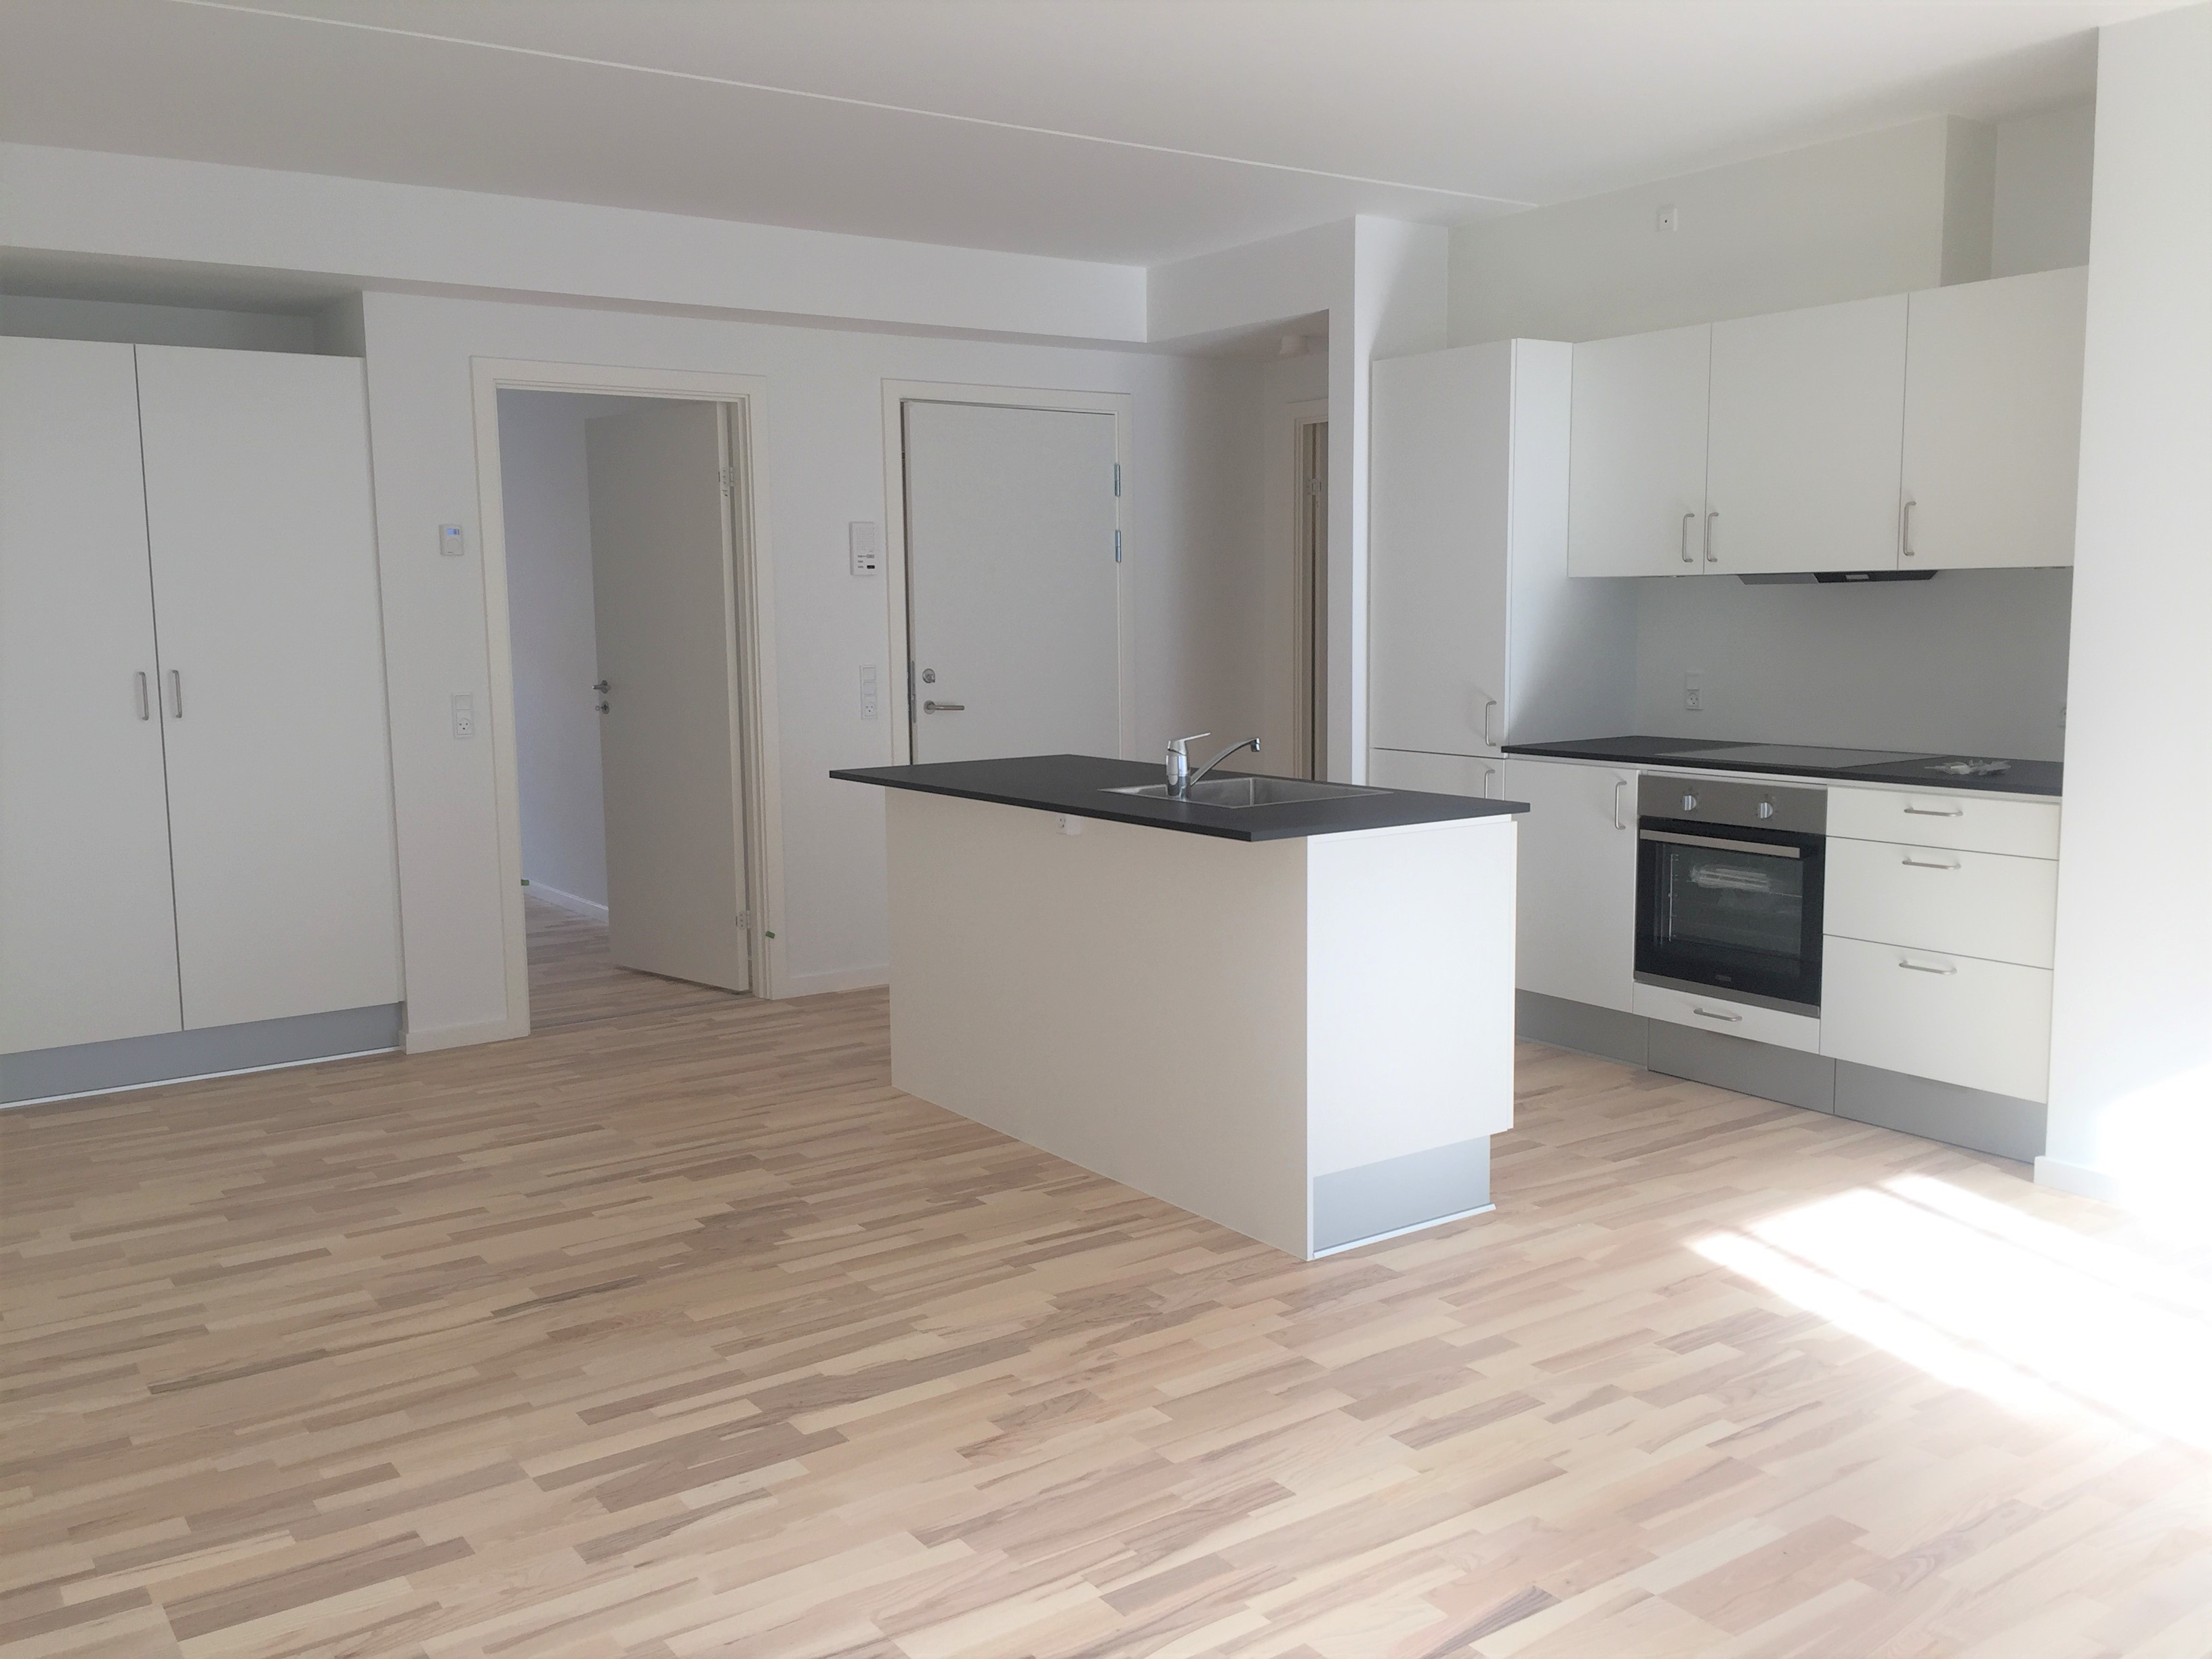 1430 – New apartment in Valby